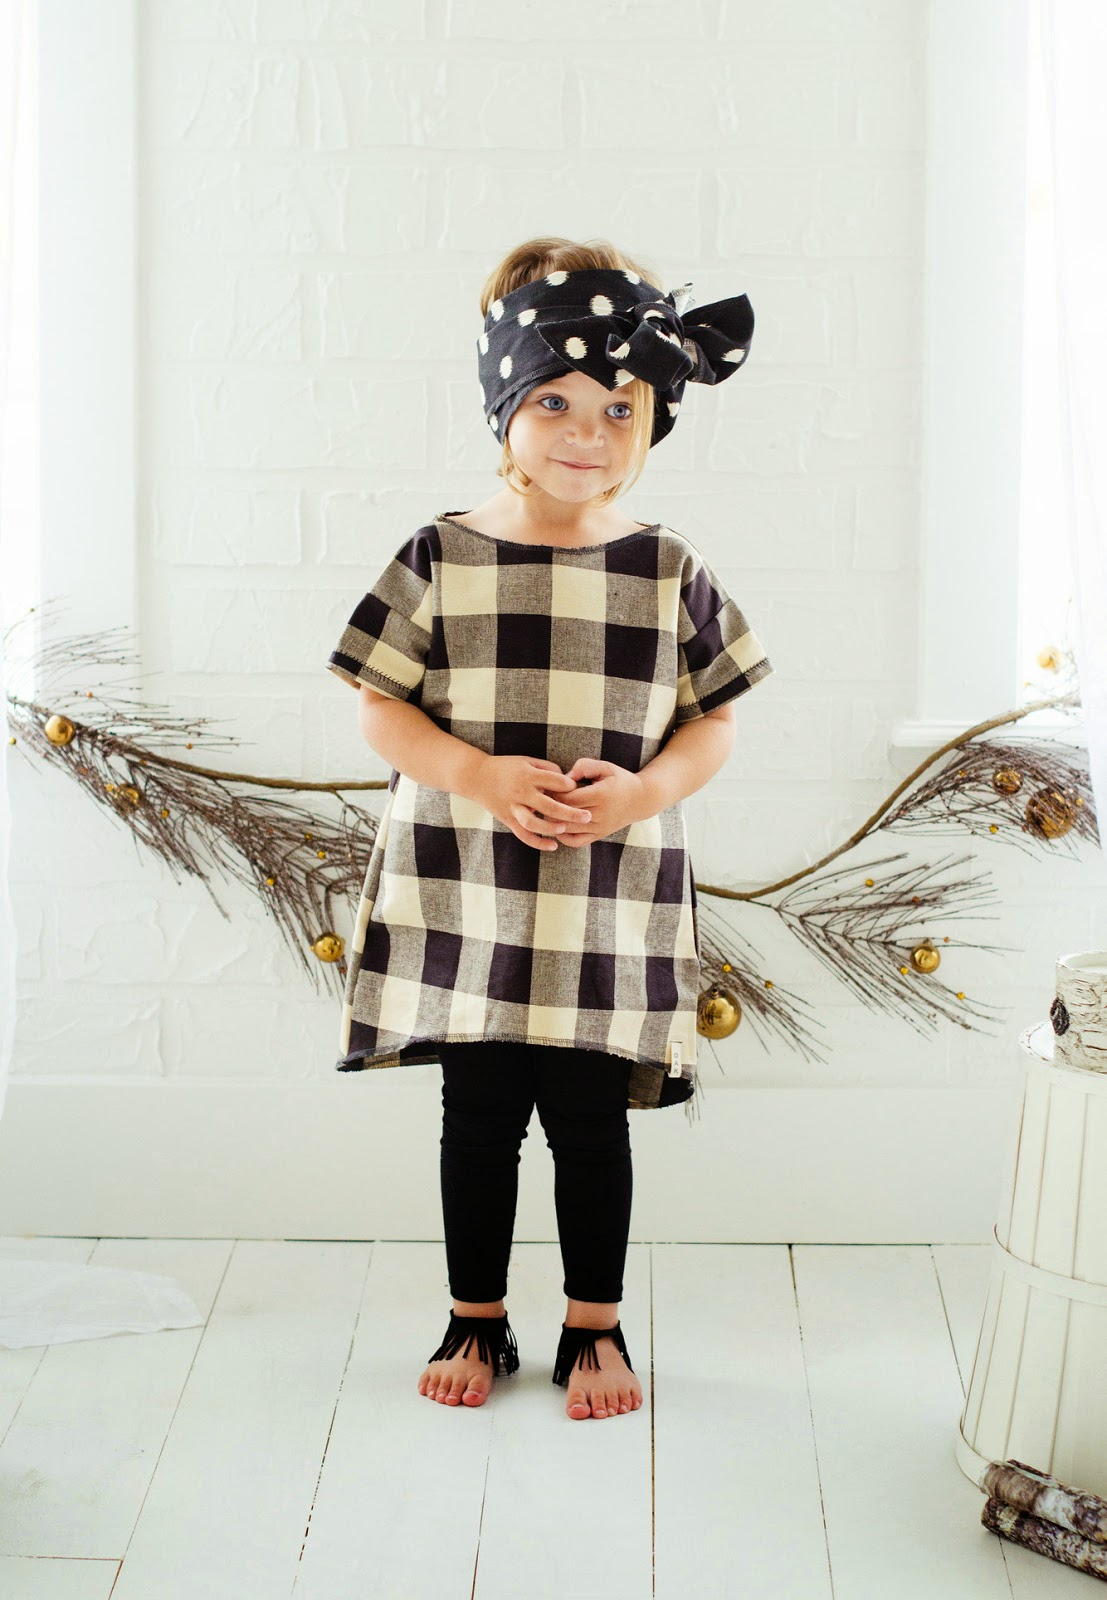 Girls dress in contrast linen by Kindred OAK for holiday collection 2014